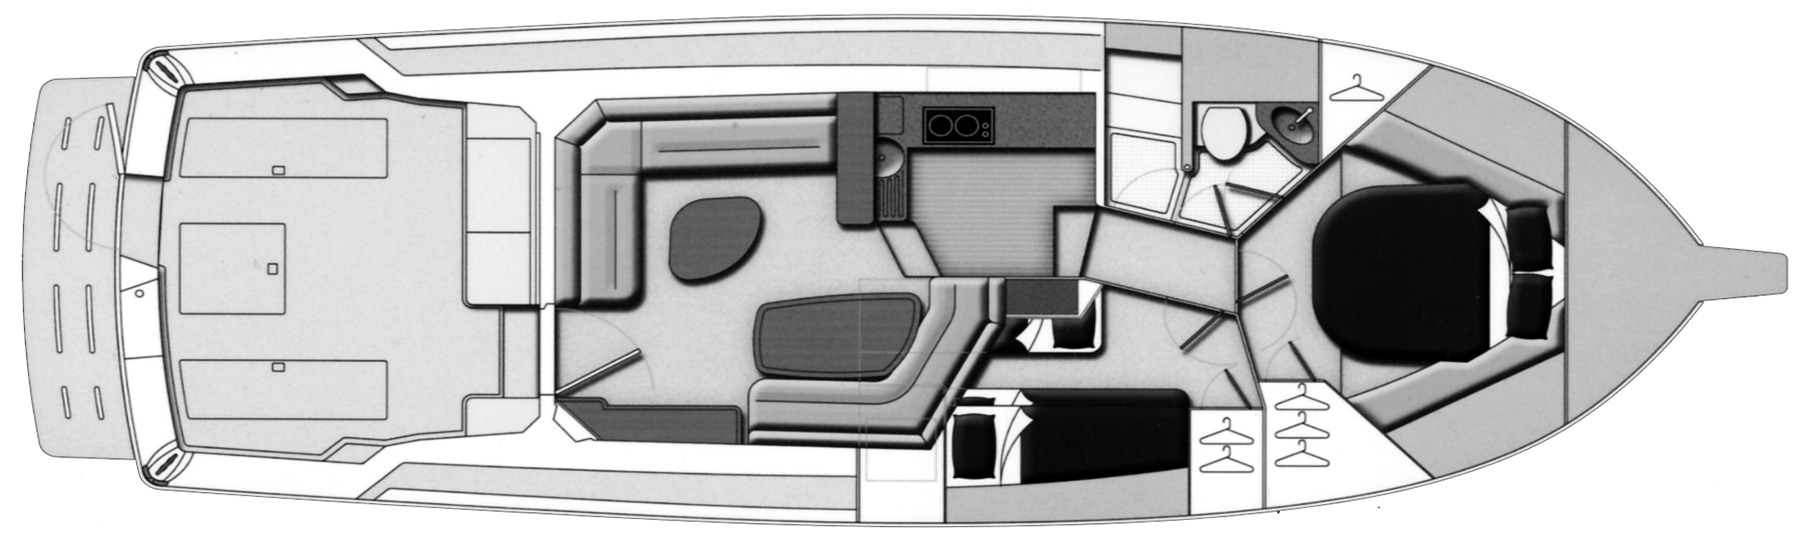 40 Convertible Floor Plan 1